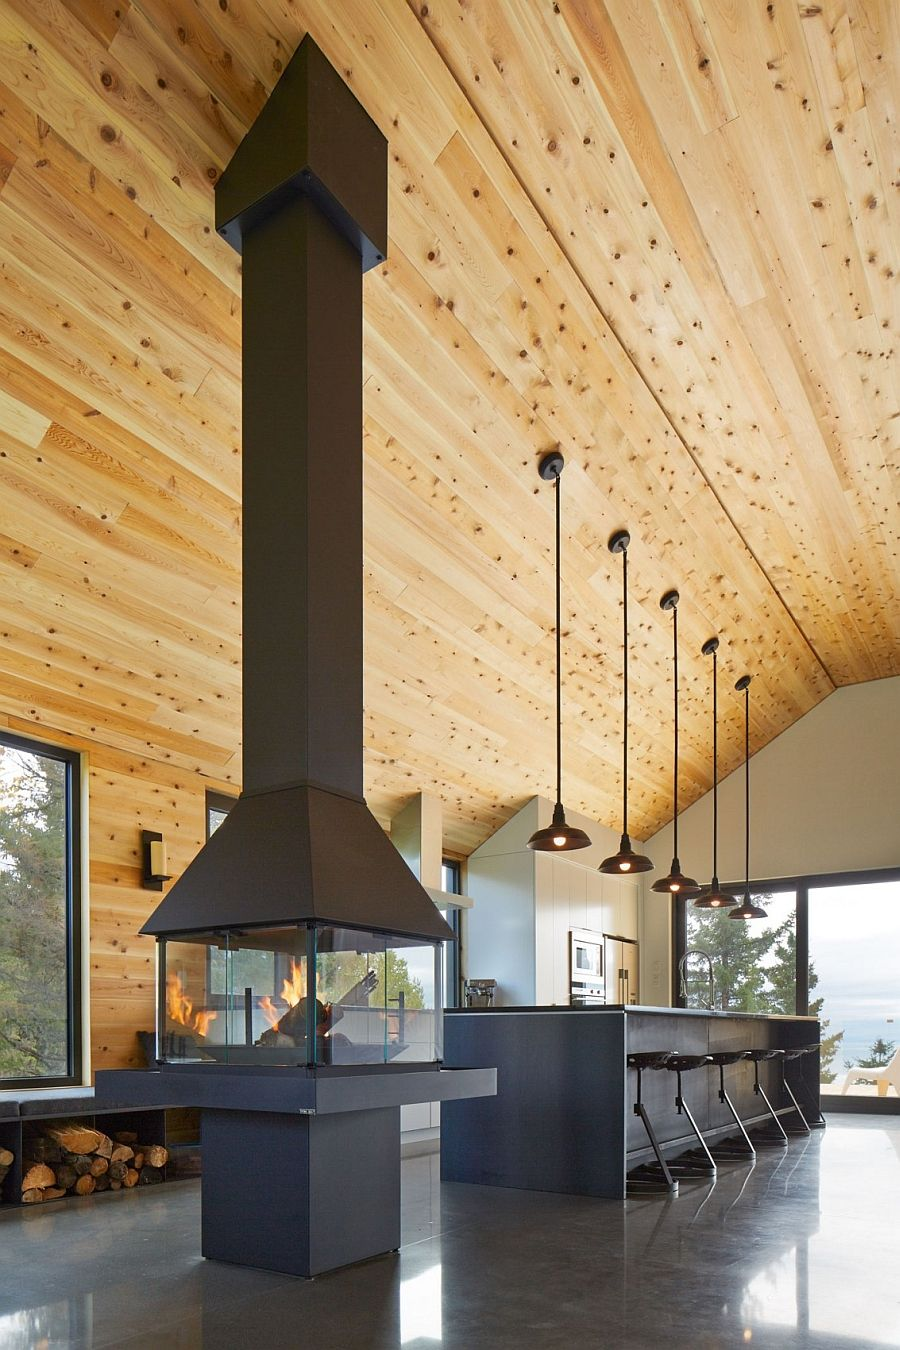 Expansive quebec residence charms with inviting warmth of wood